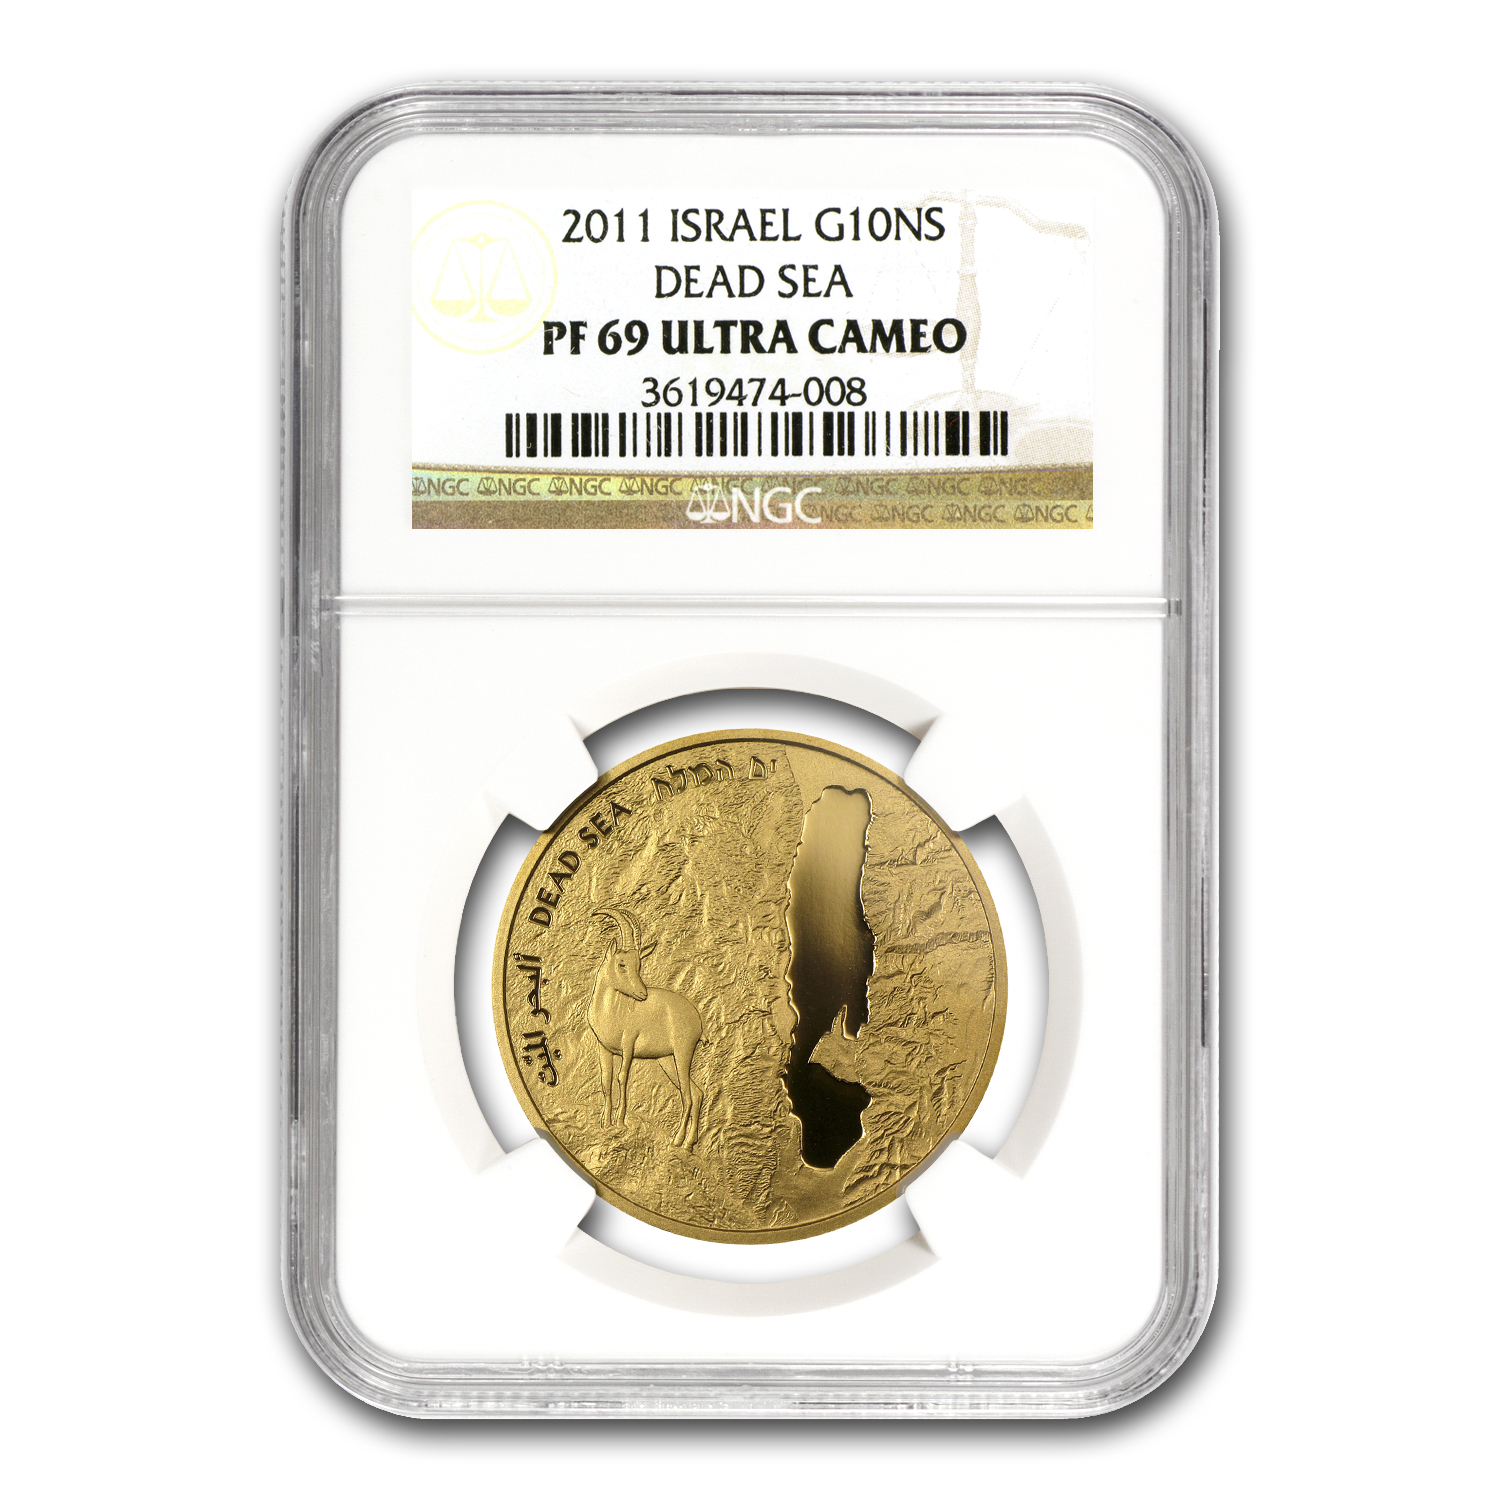 2011 Israel 1/2 oz Gold Dead Sea PF-69 NGC